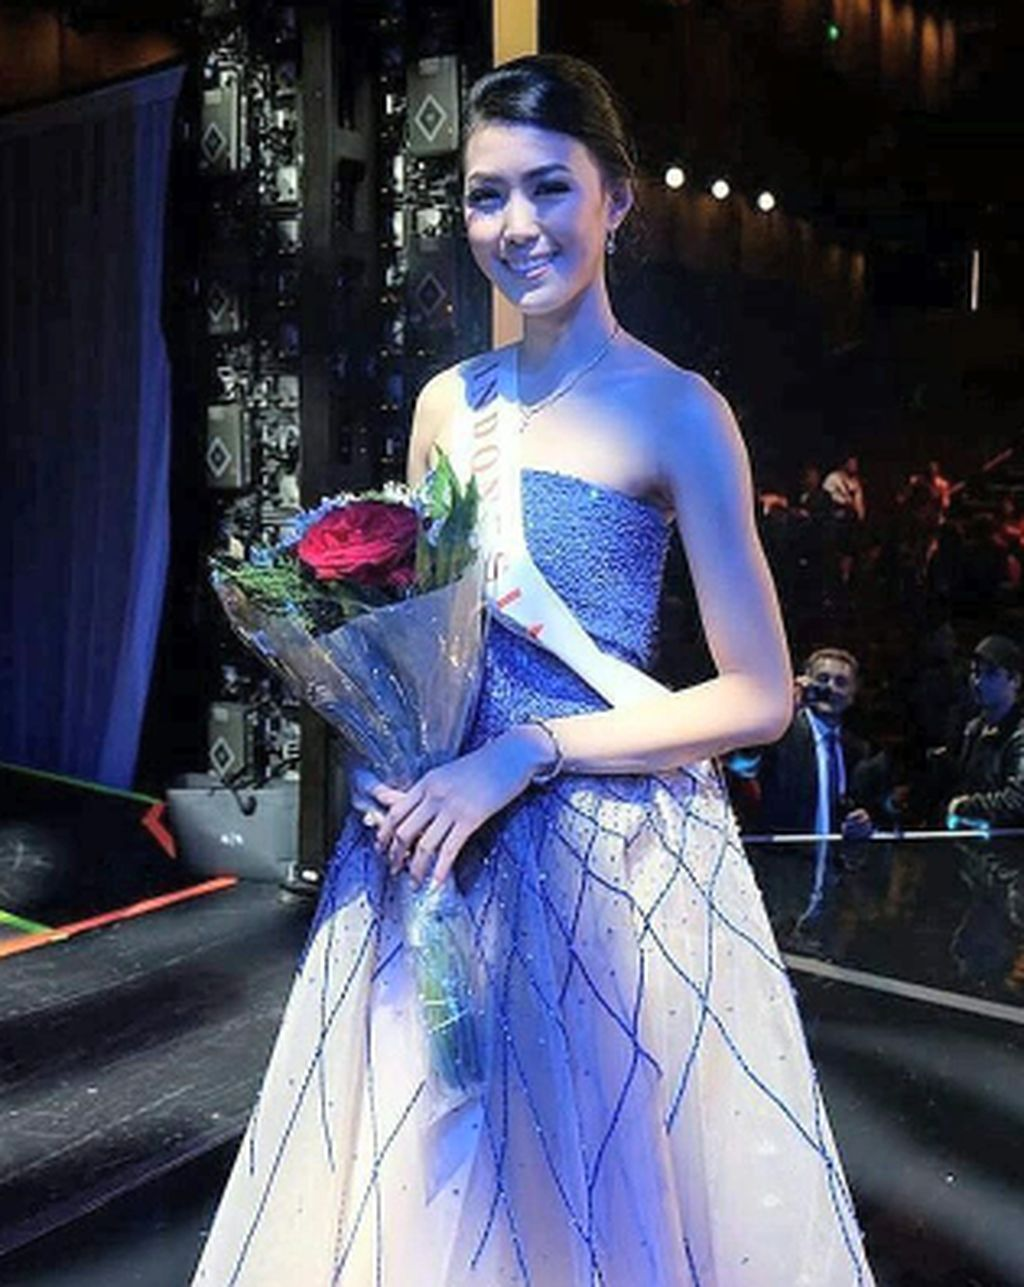 Selamat! Miss Indonesia Natasha Mannuela Juara 3 Miss World 2016